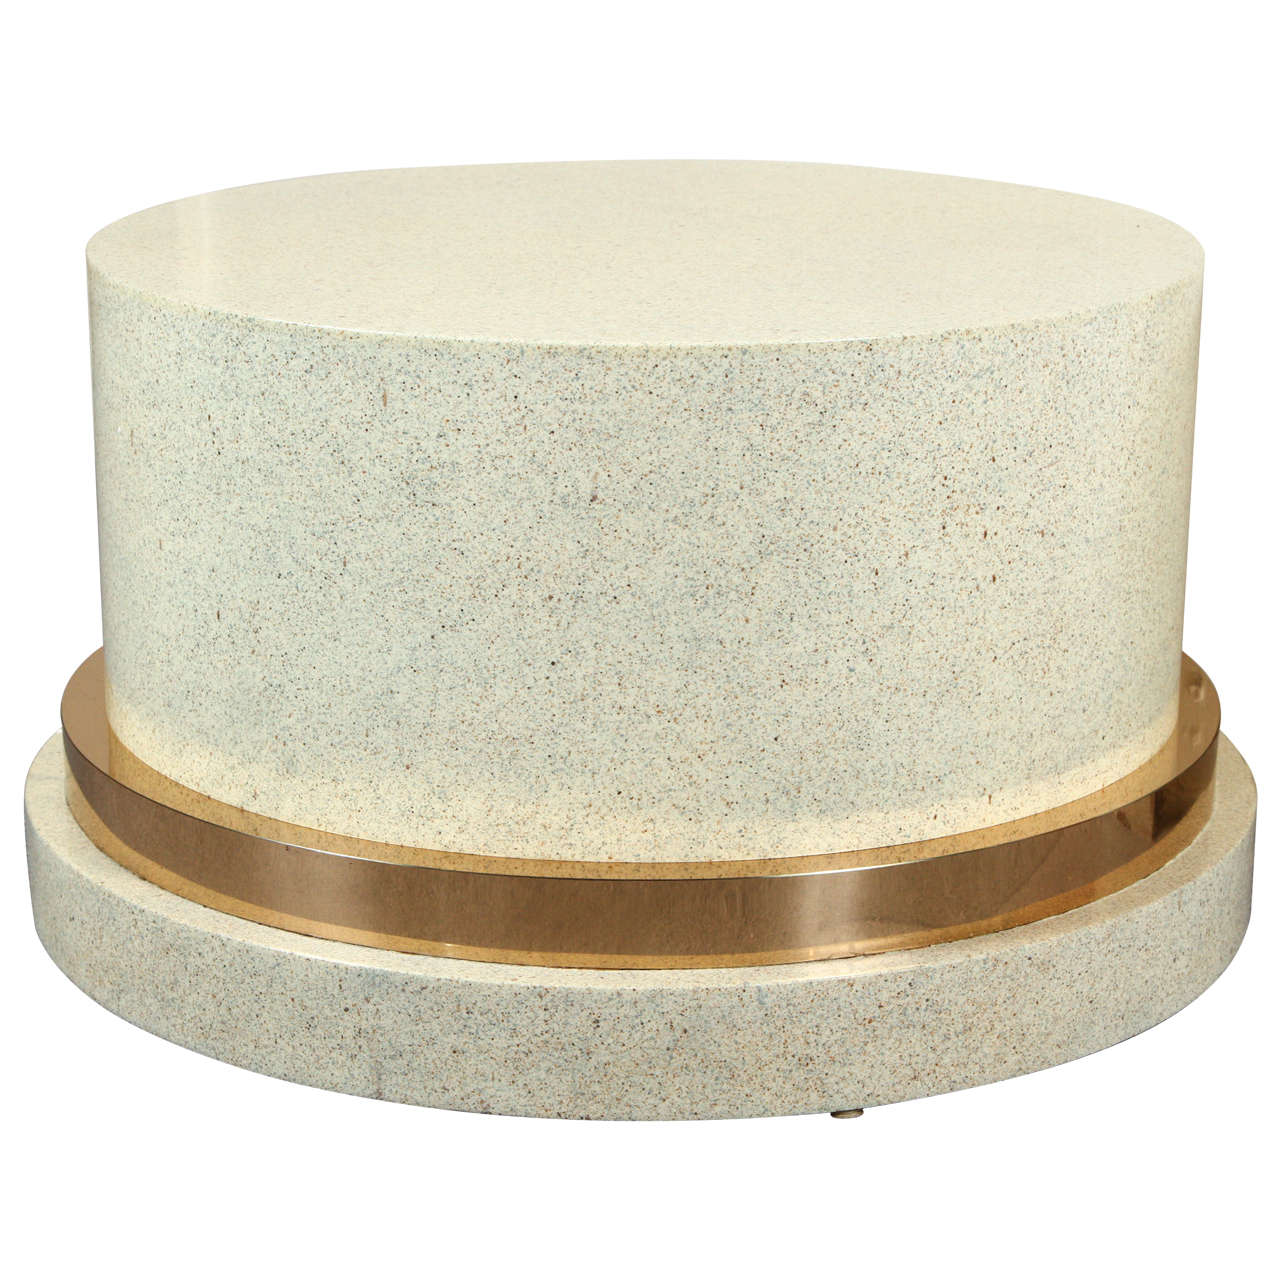 Low Pedestal Or Coffee Table Base Of Wood And Brass With A Faux Stone Finish At 1stdibs